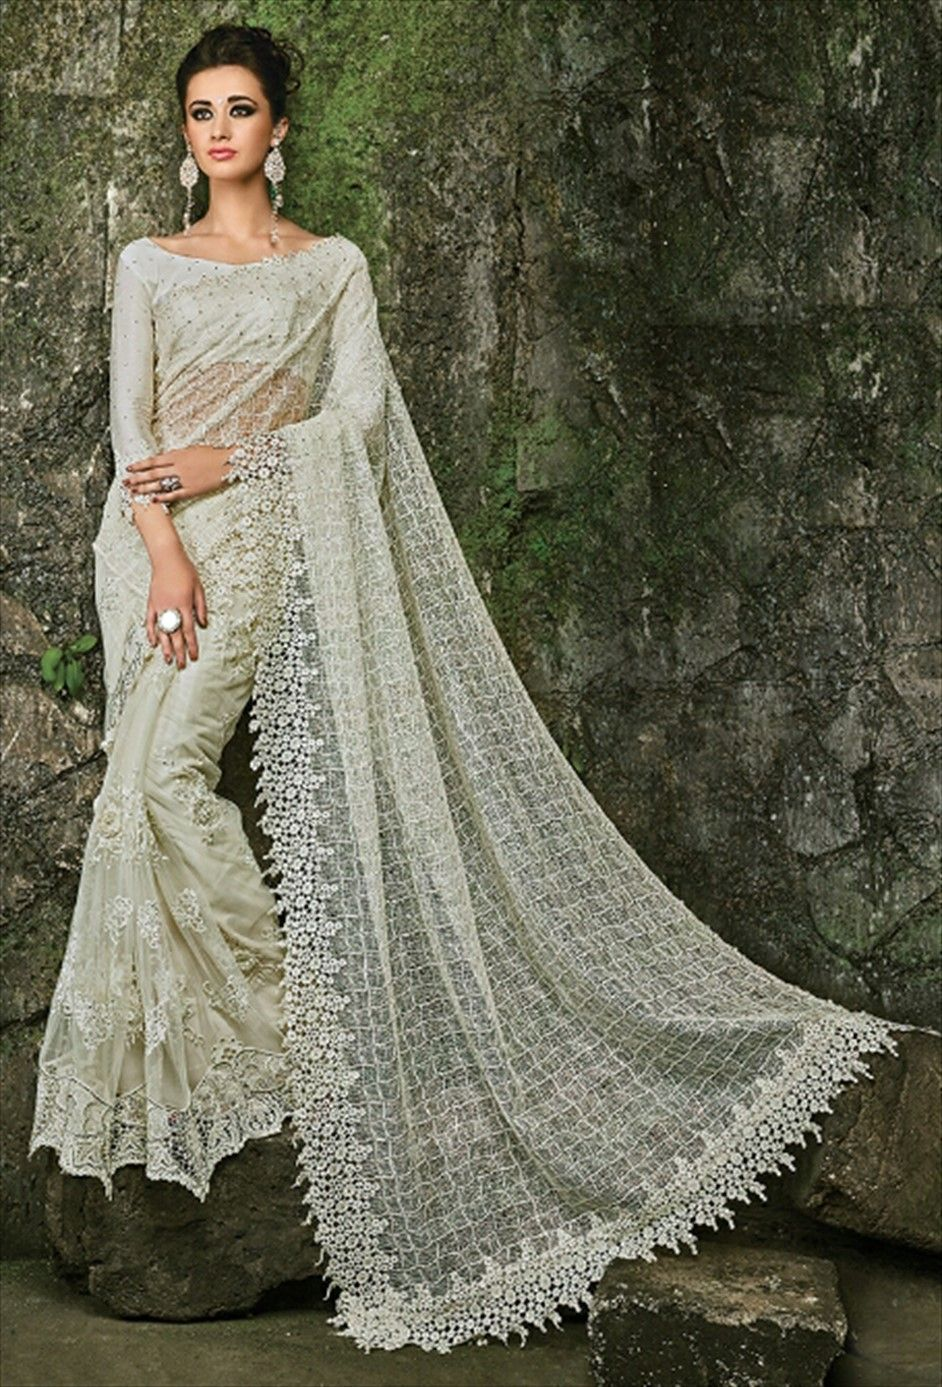 White Saree Tamanna In Veeram: 717487: White And Off White Color Family Bridal Wedding